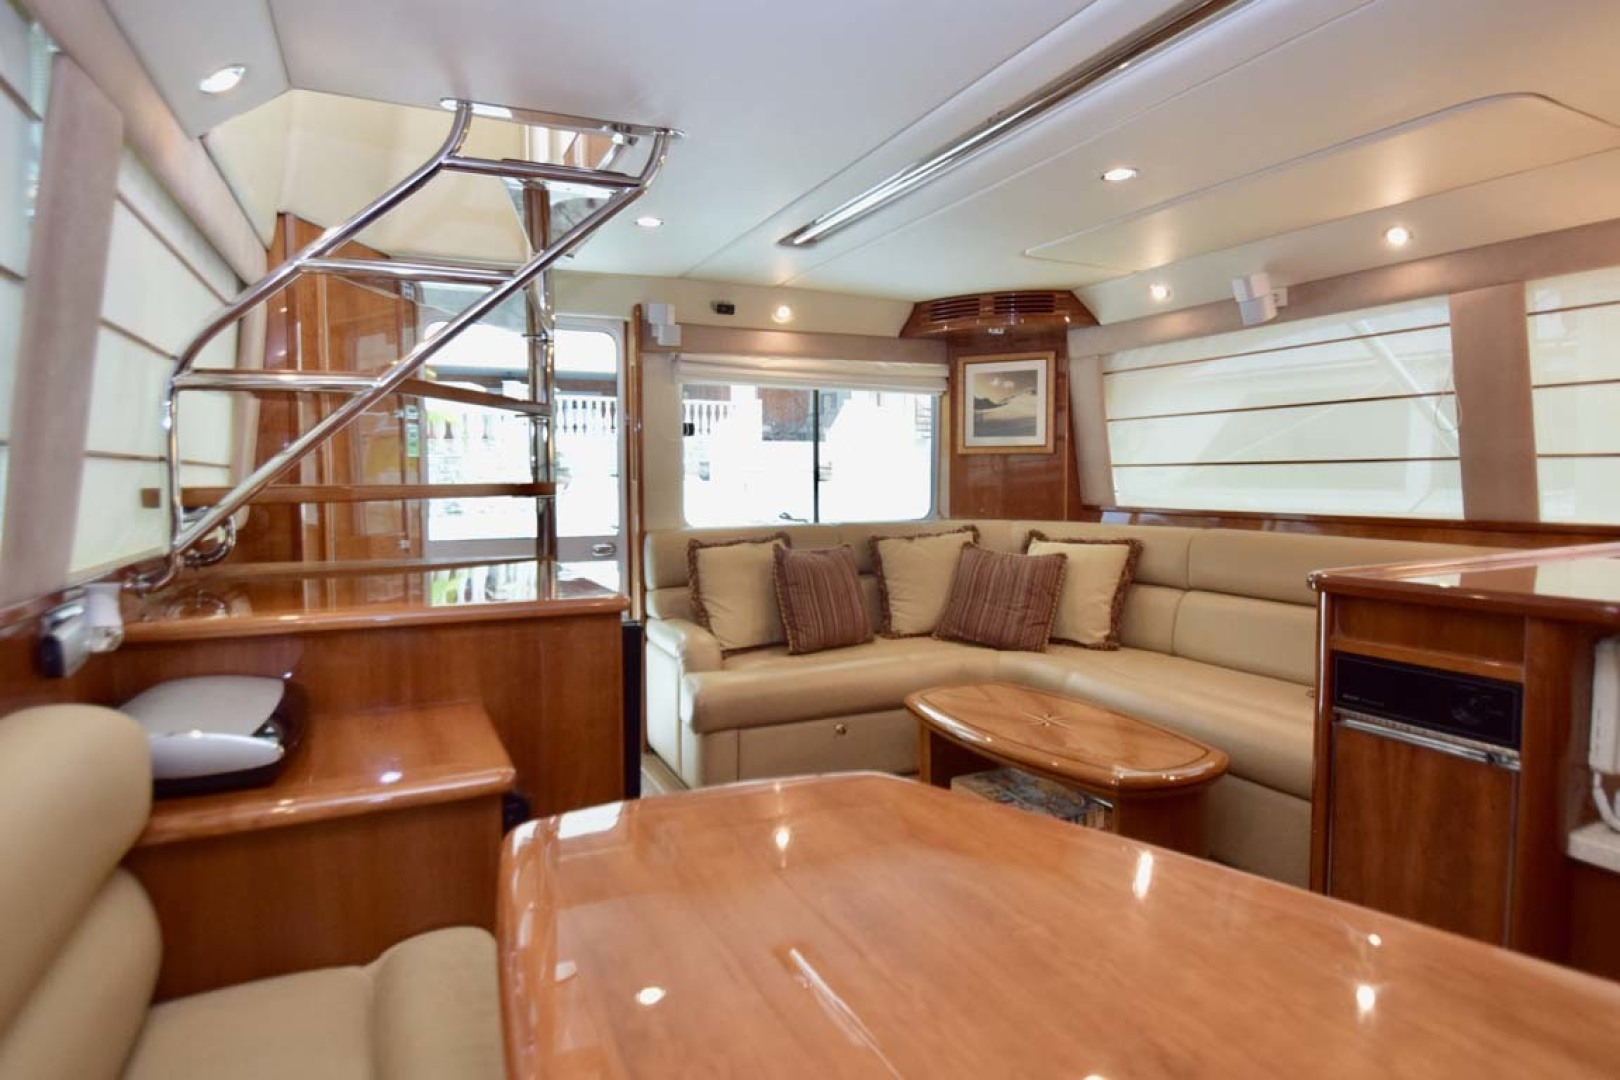 Riviera-Enclosed Flybridge 2007-Magica II Coral Gables-Florida-United States-Dinette View To Stairs To FB-1443166 | Thumbnail